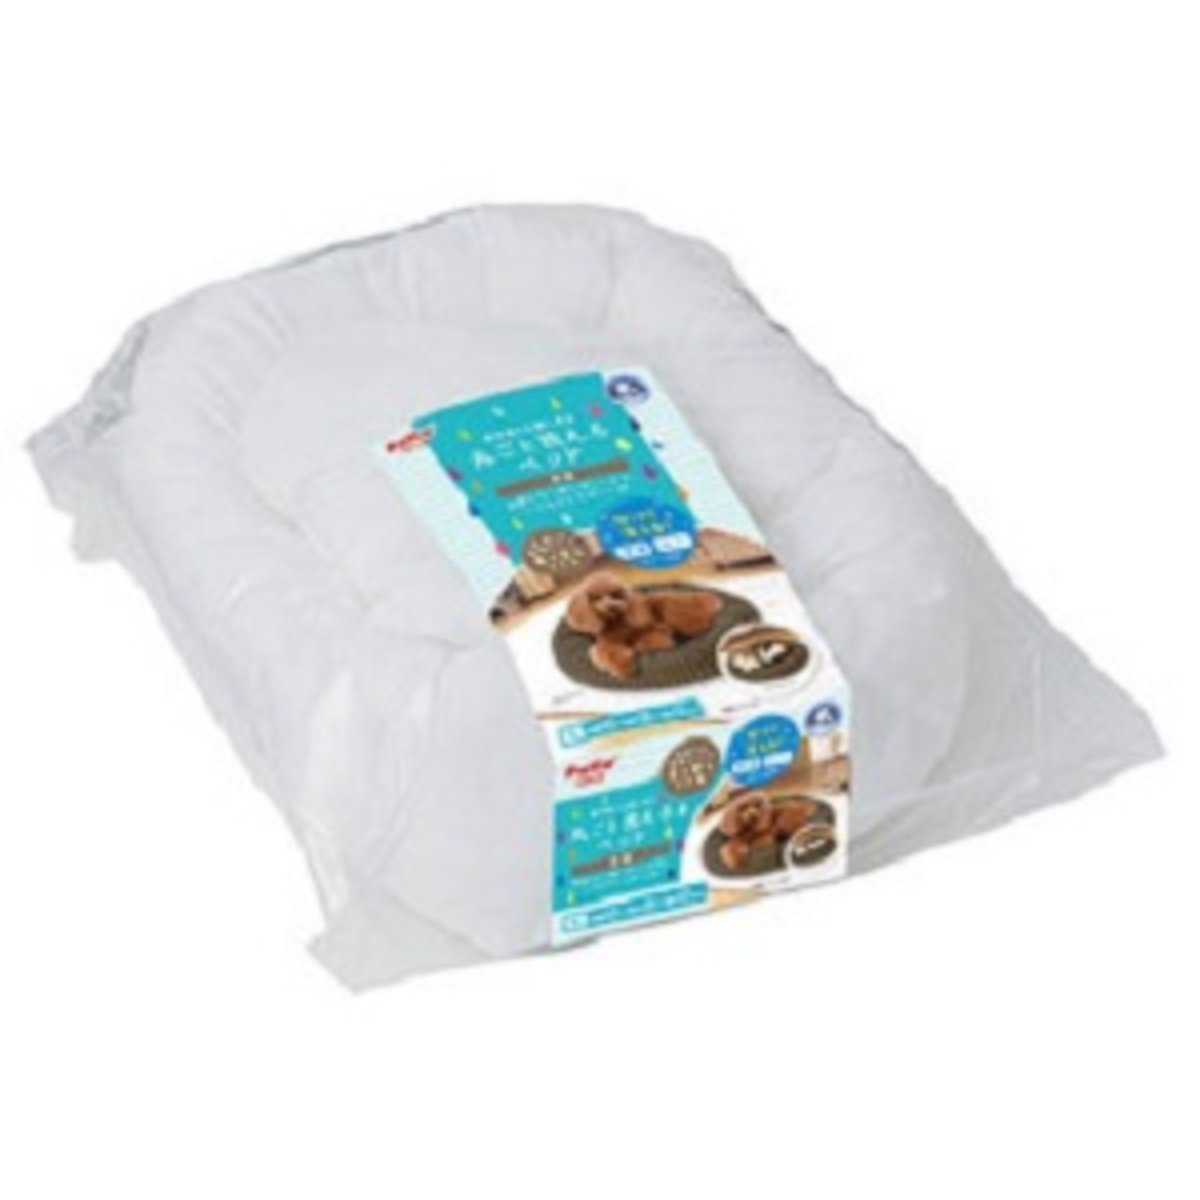 Washable Cushion Bed with Exchangeable Cover S